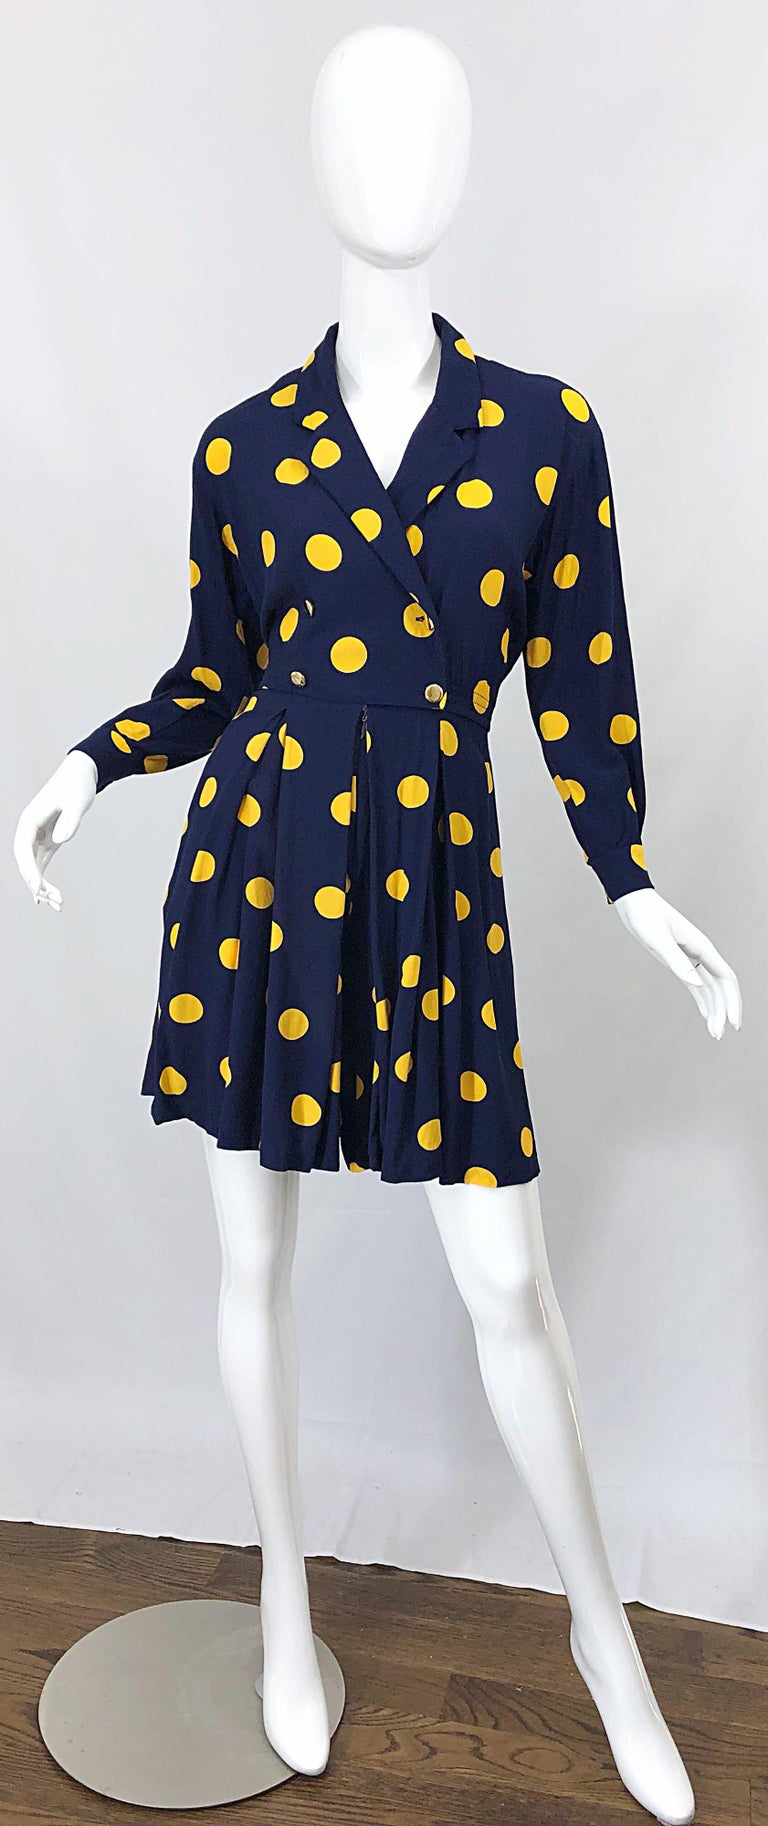 Size 8 Romper Late 1980s Navy Blue and Yellow Polka Dot 80s Vintage Romper For Sale 8